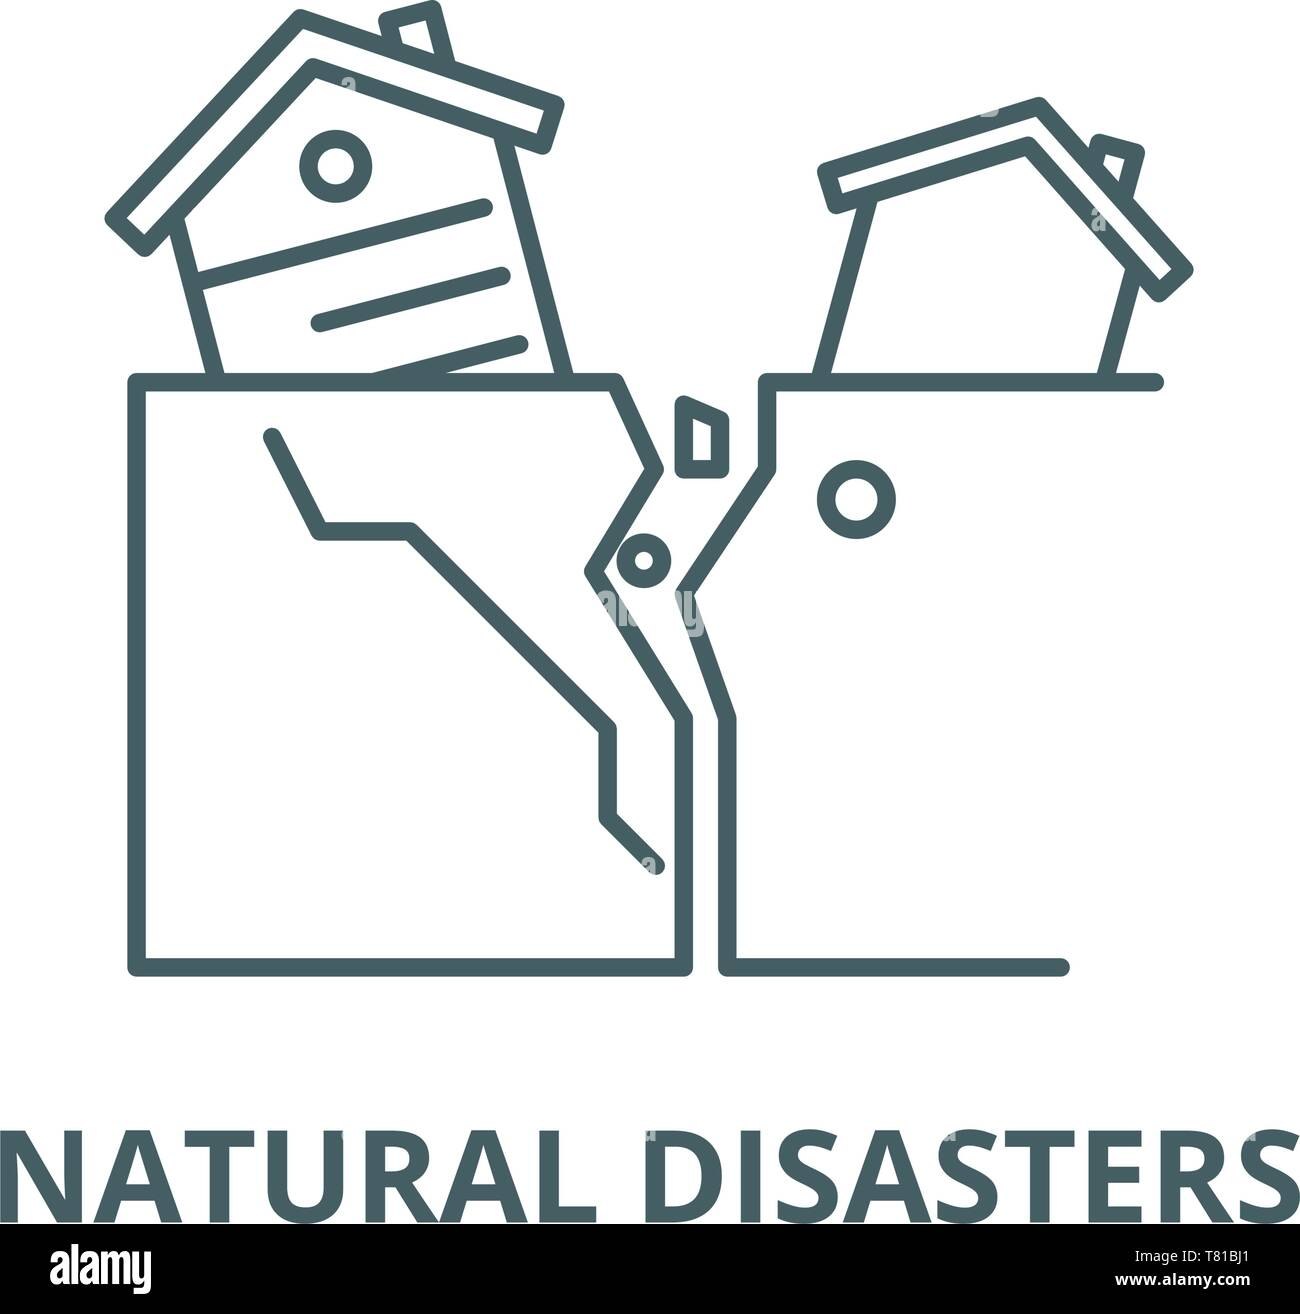 Natural disasters vector line icon, linear concept, outline sign, symbol Stock Vector